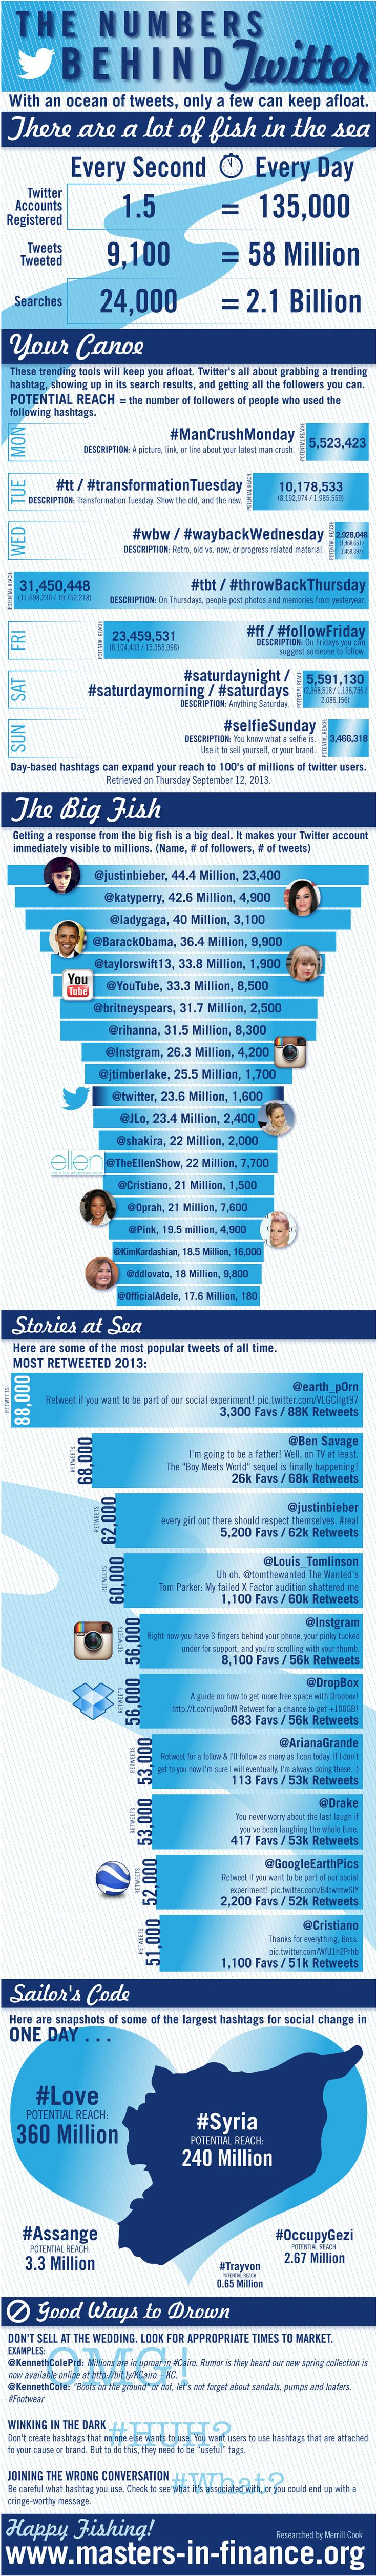 60 Sensational Social Media Facts and Statistics on Twitter in 2013Social Network, Infographic Socialmedia, Marketing, Infografia Twitter, Social Media, Twitter Infographic, Media Infographic, Media Facts, Infographic Parks